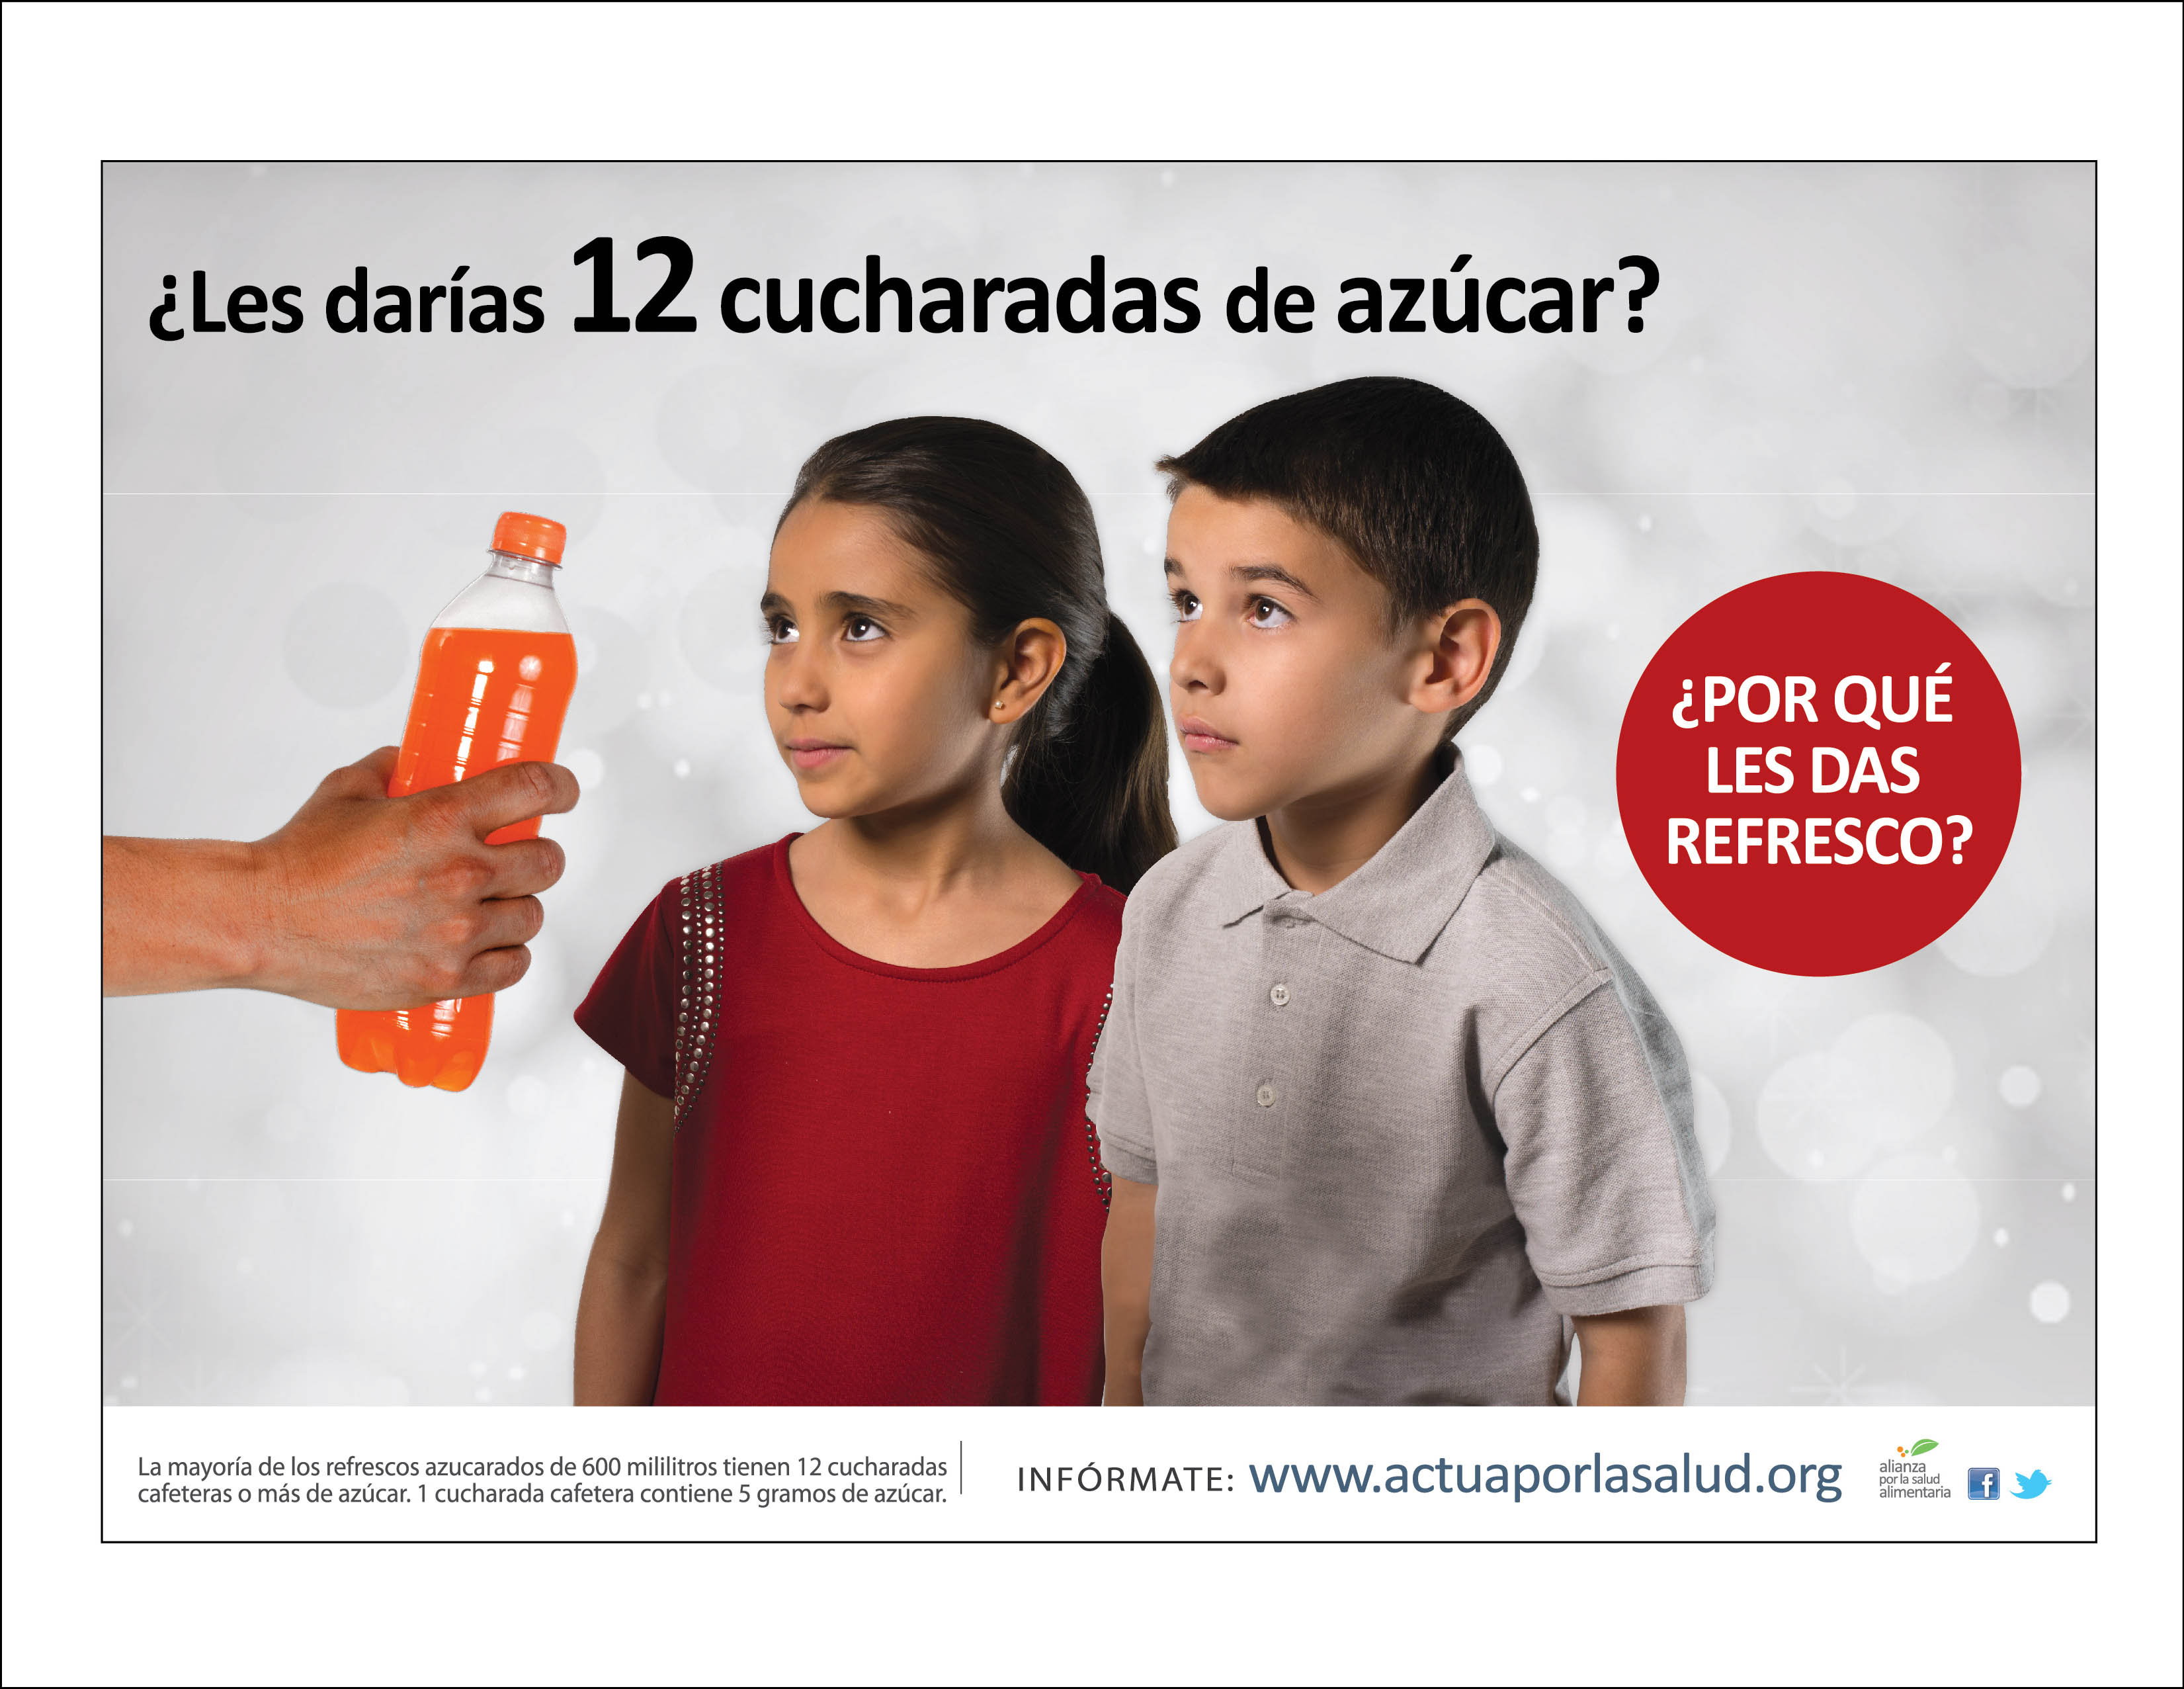 A public awareness ad that ran in Mexico when the soda tax was being debated. Translation: Would you give them 12 spoonfuls of sugar? Why do you give them soda? Photo credit: Alianza por la Salud Alimentaria